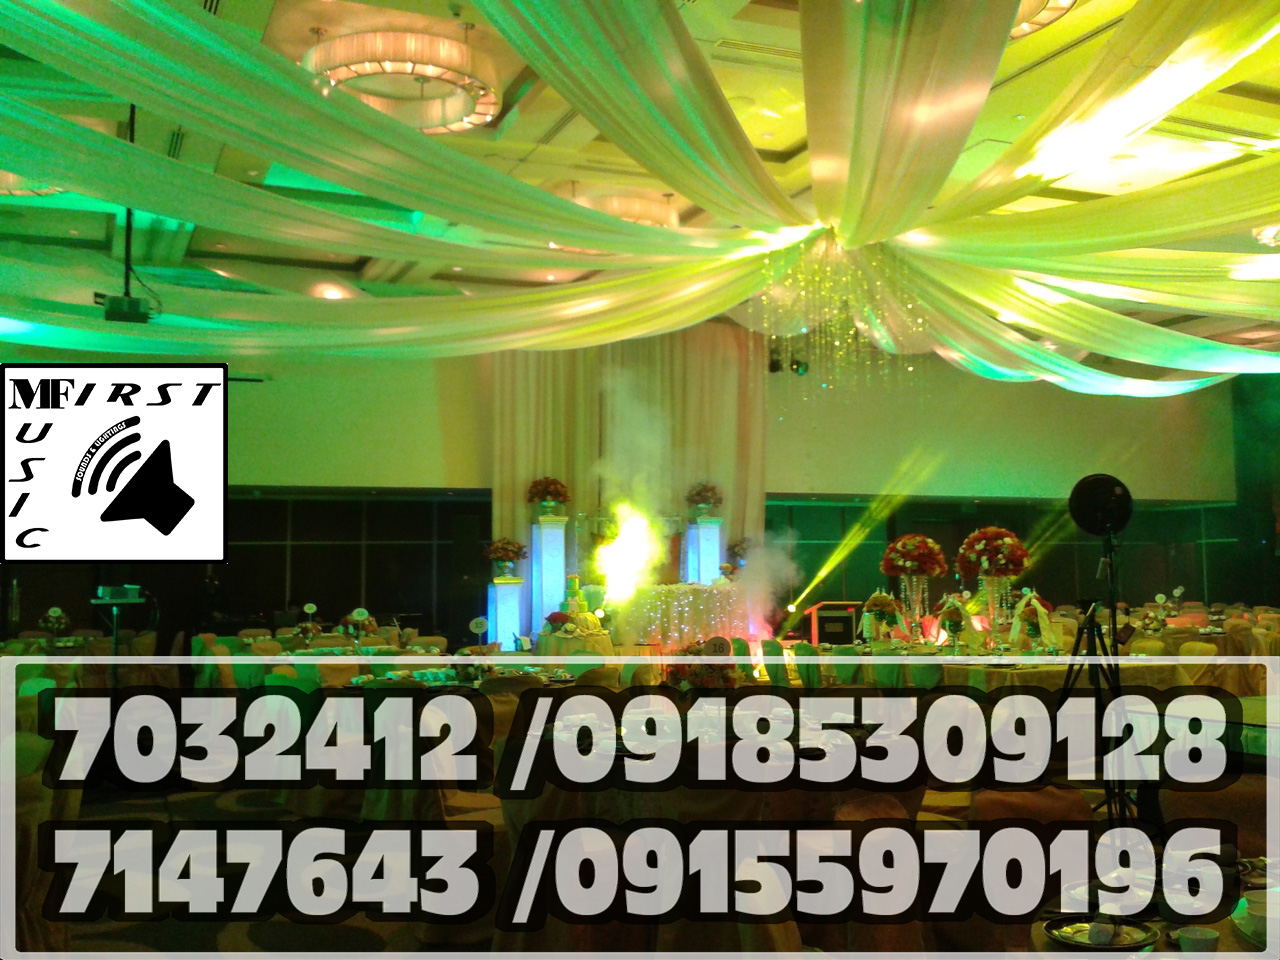 Music First Sound System Rental Manila Party Lights For Rent7032412